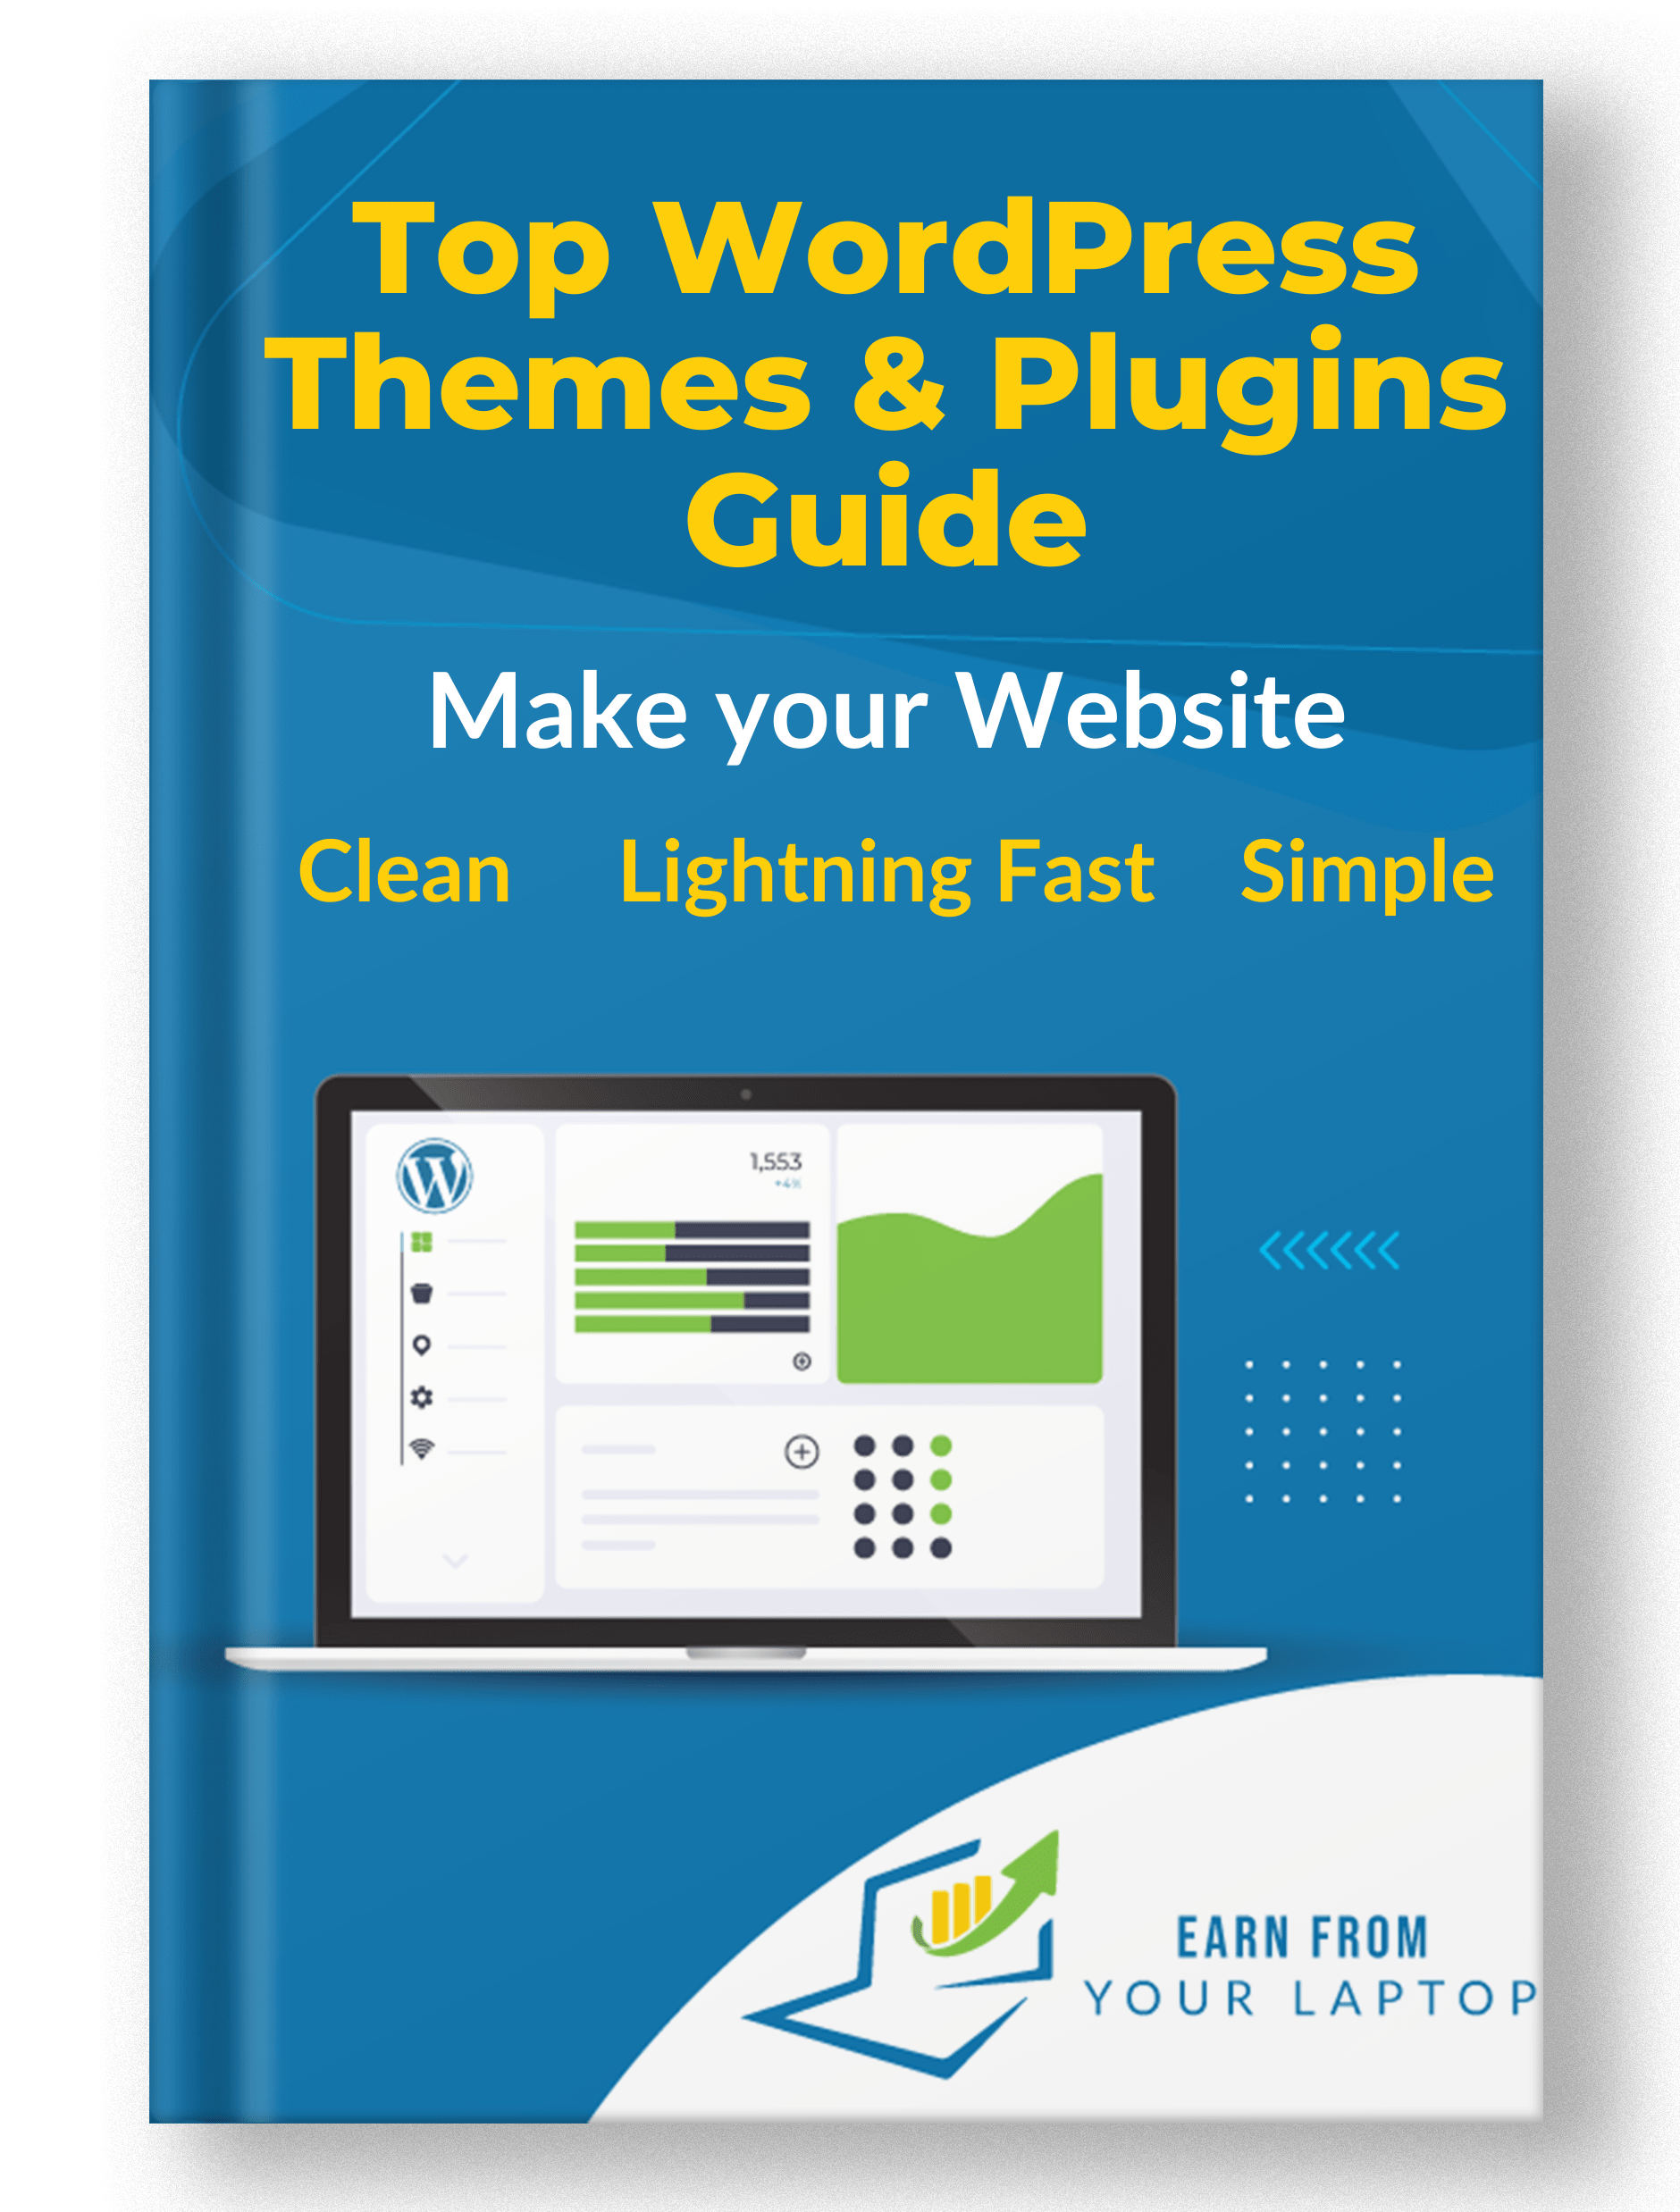 wealthy affiliate black friday Top WordPress Themes Plugins Guide 1 min